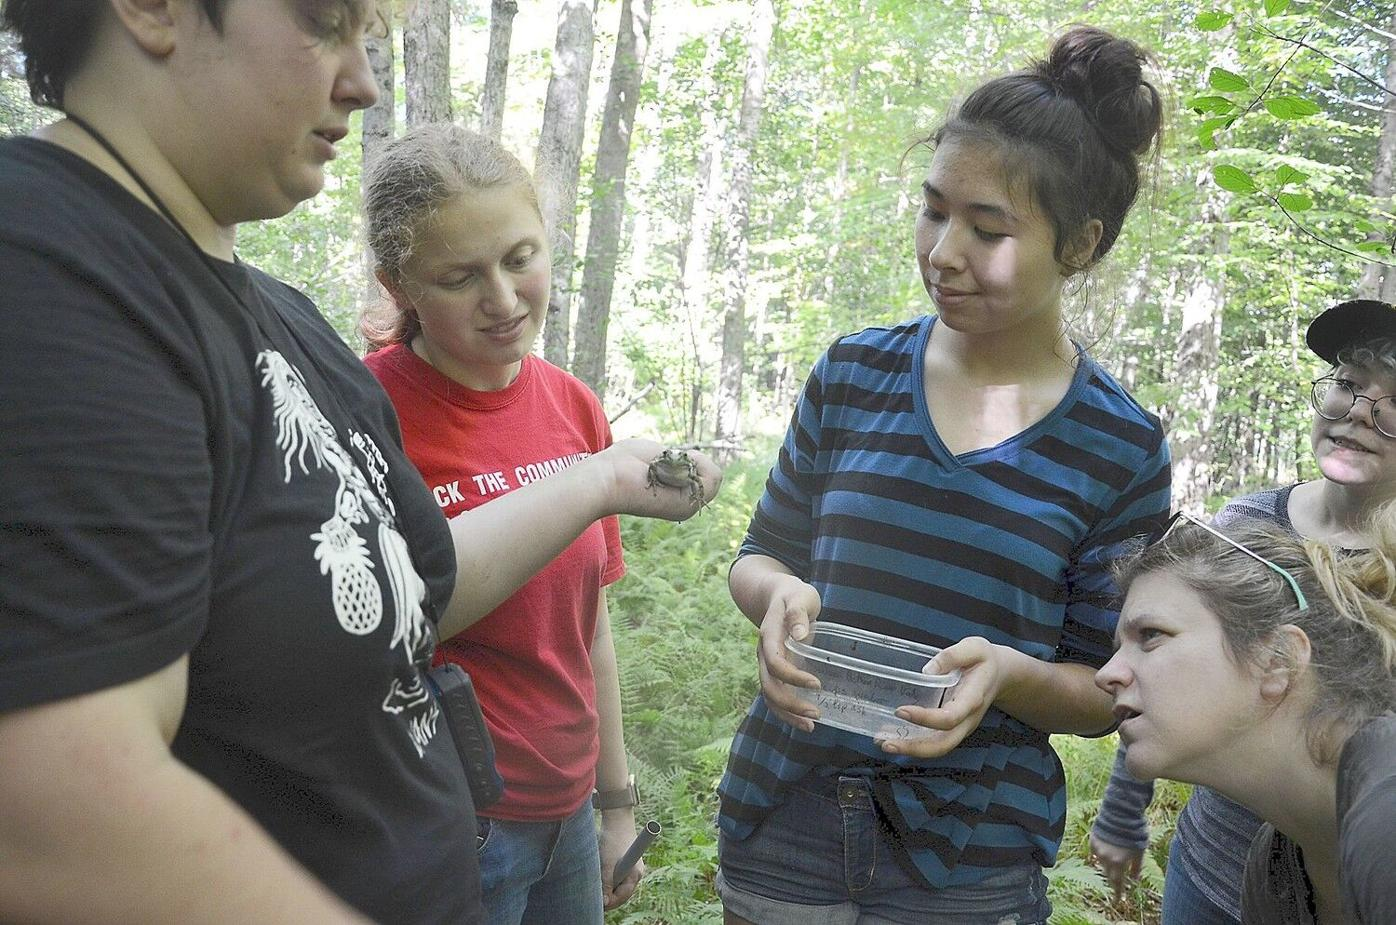 Berkshire Bioblitz gives life sciences students hands-on experience